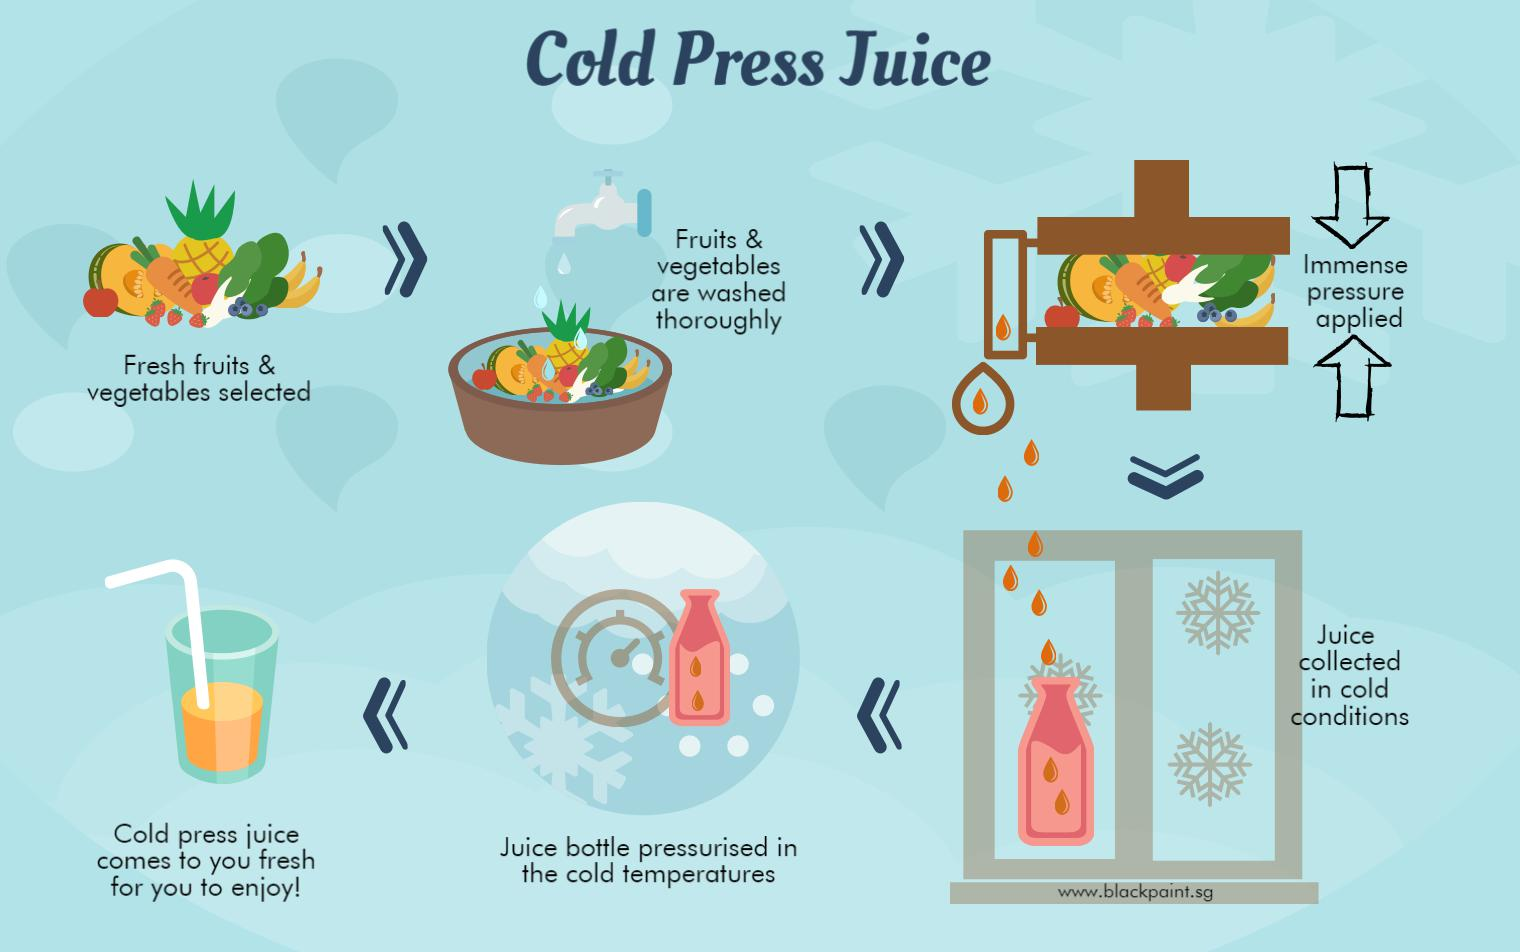 What is Cold Press juice and How is Cold Press Juice Made